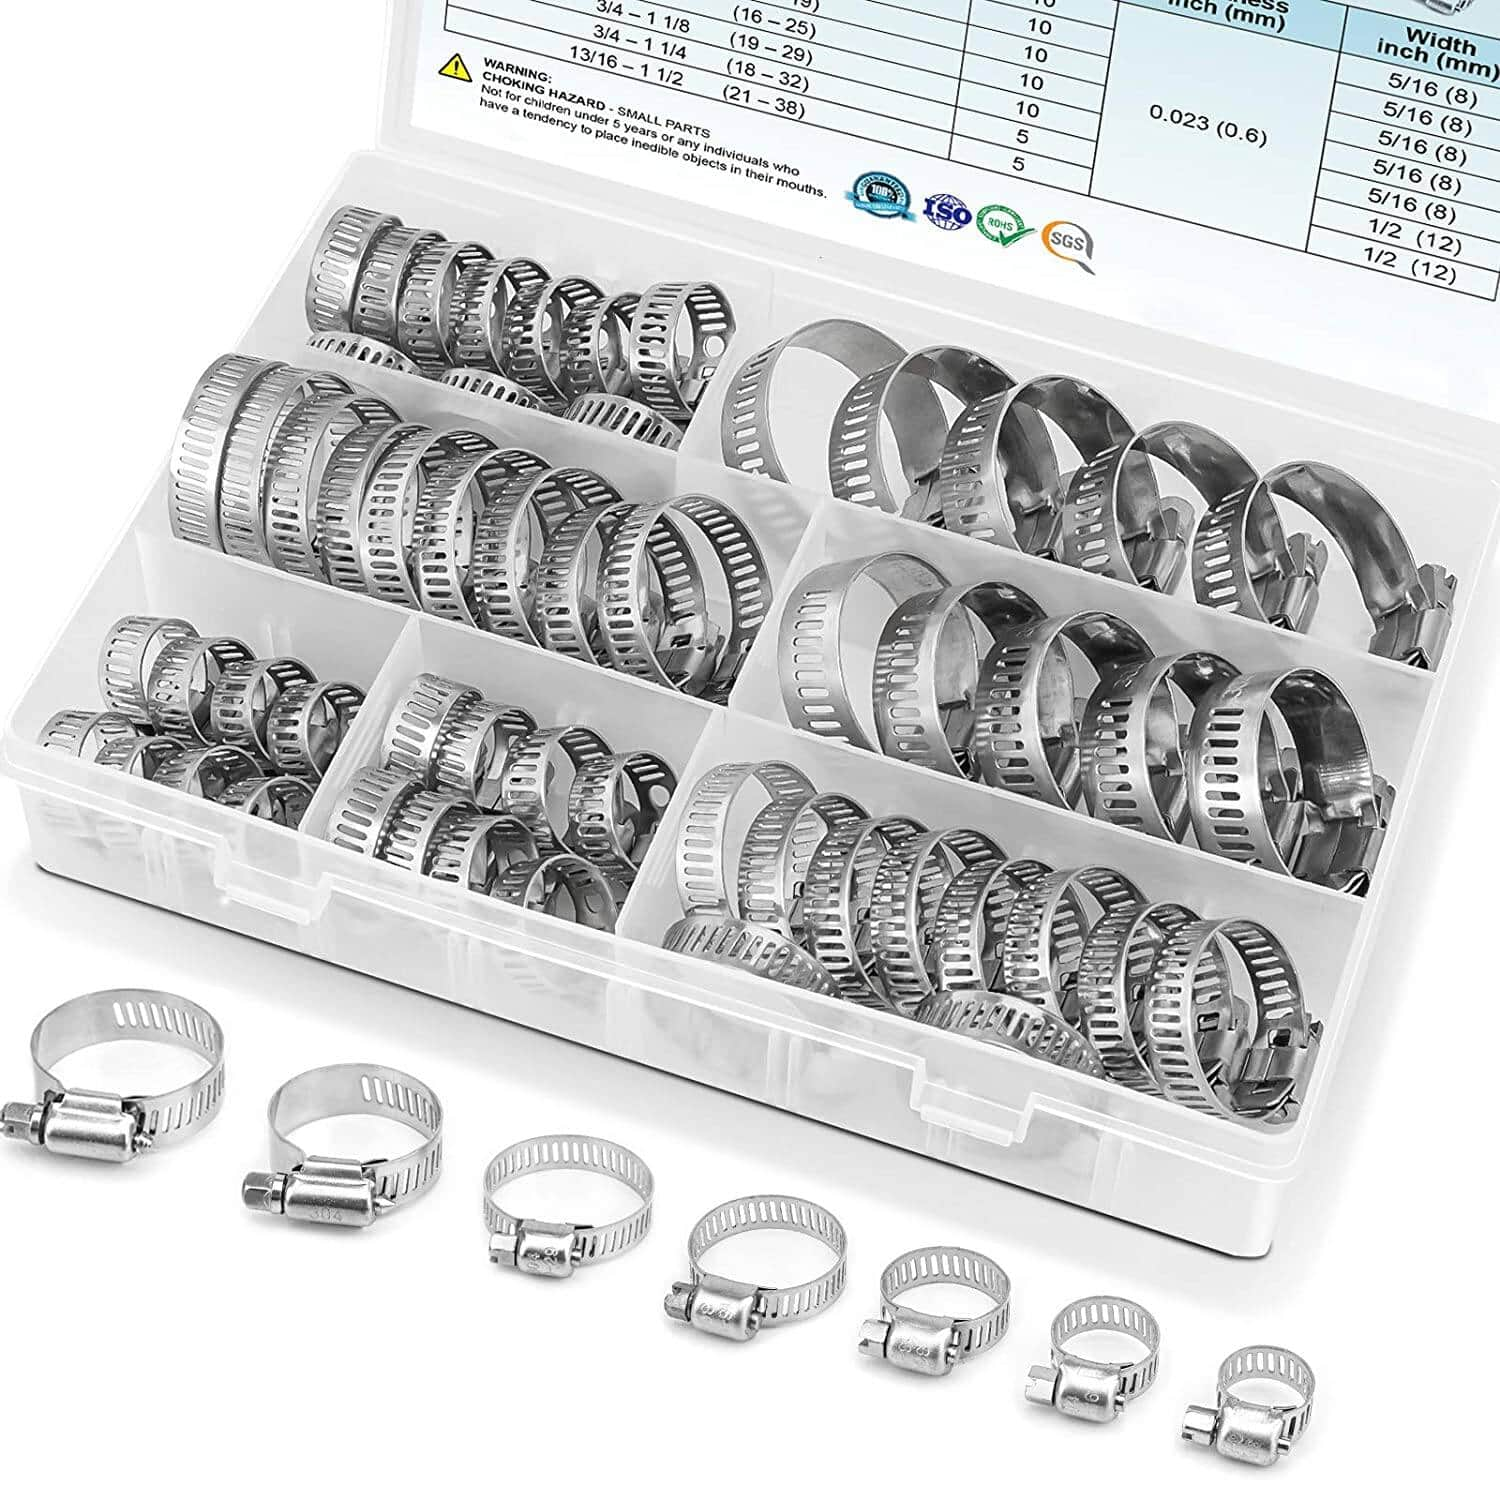 60PCS Hose Clamp Set - 1/4''–1-1/2'' 304 Stainless Steel Worm Gear Hose Clamps for Pipe, Intercooler, Plumbing, Tube and Fuel Line $11.99 + FS with PRIME